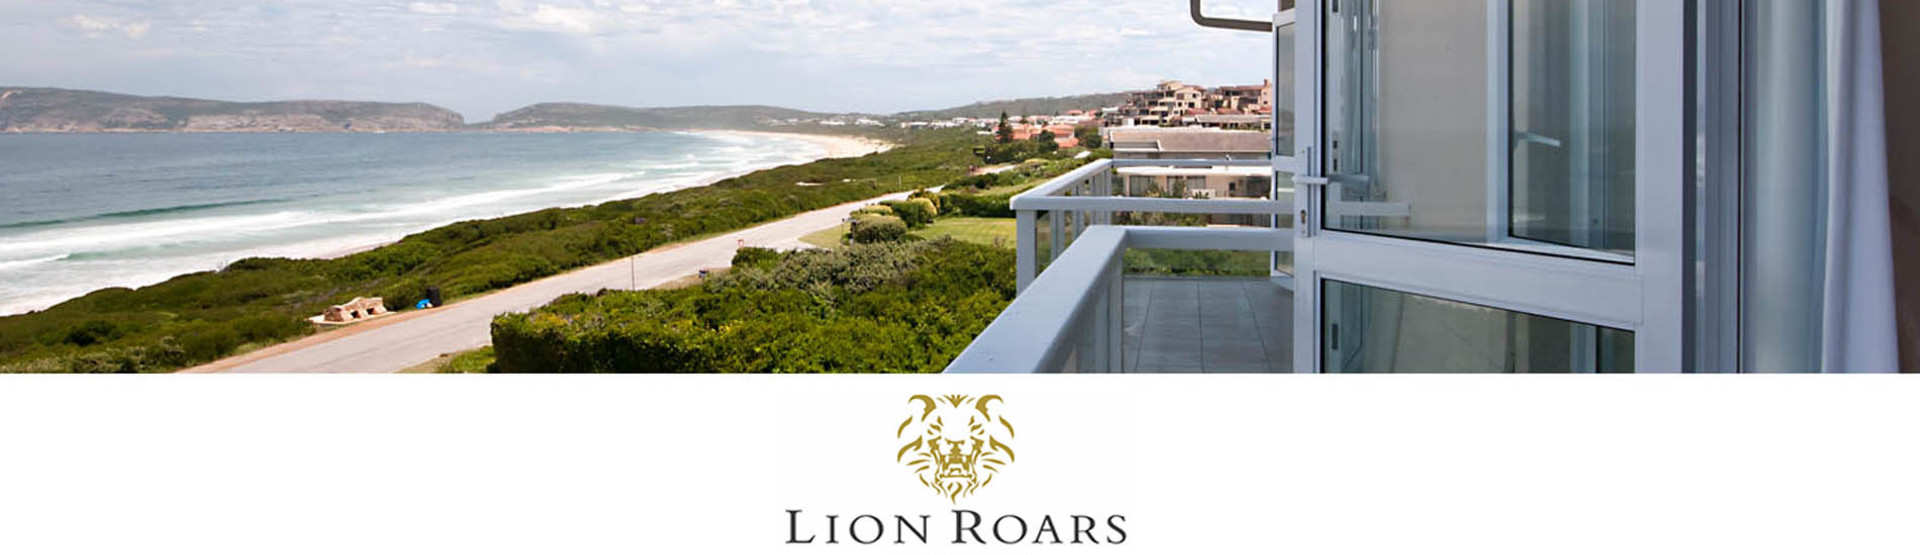 The Robberg Beach Lodge Plettenberg Bay Lion Roars Story Lodges In Portfolio